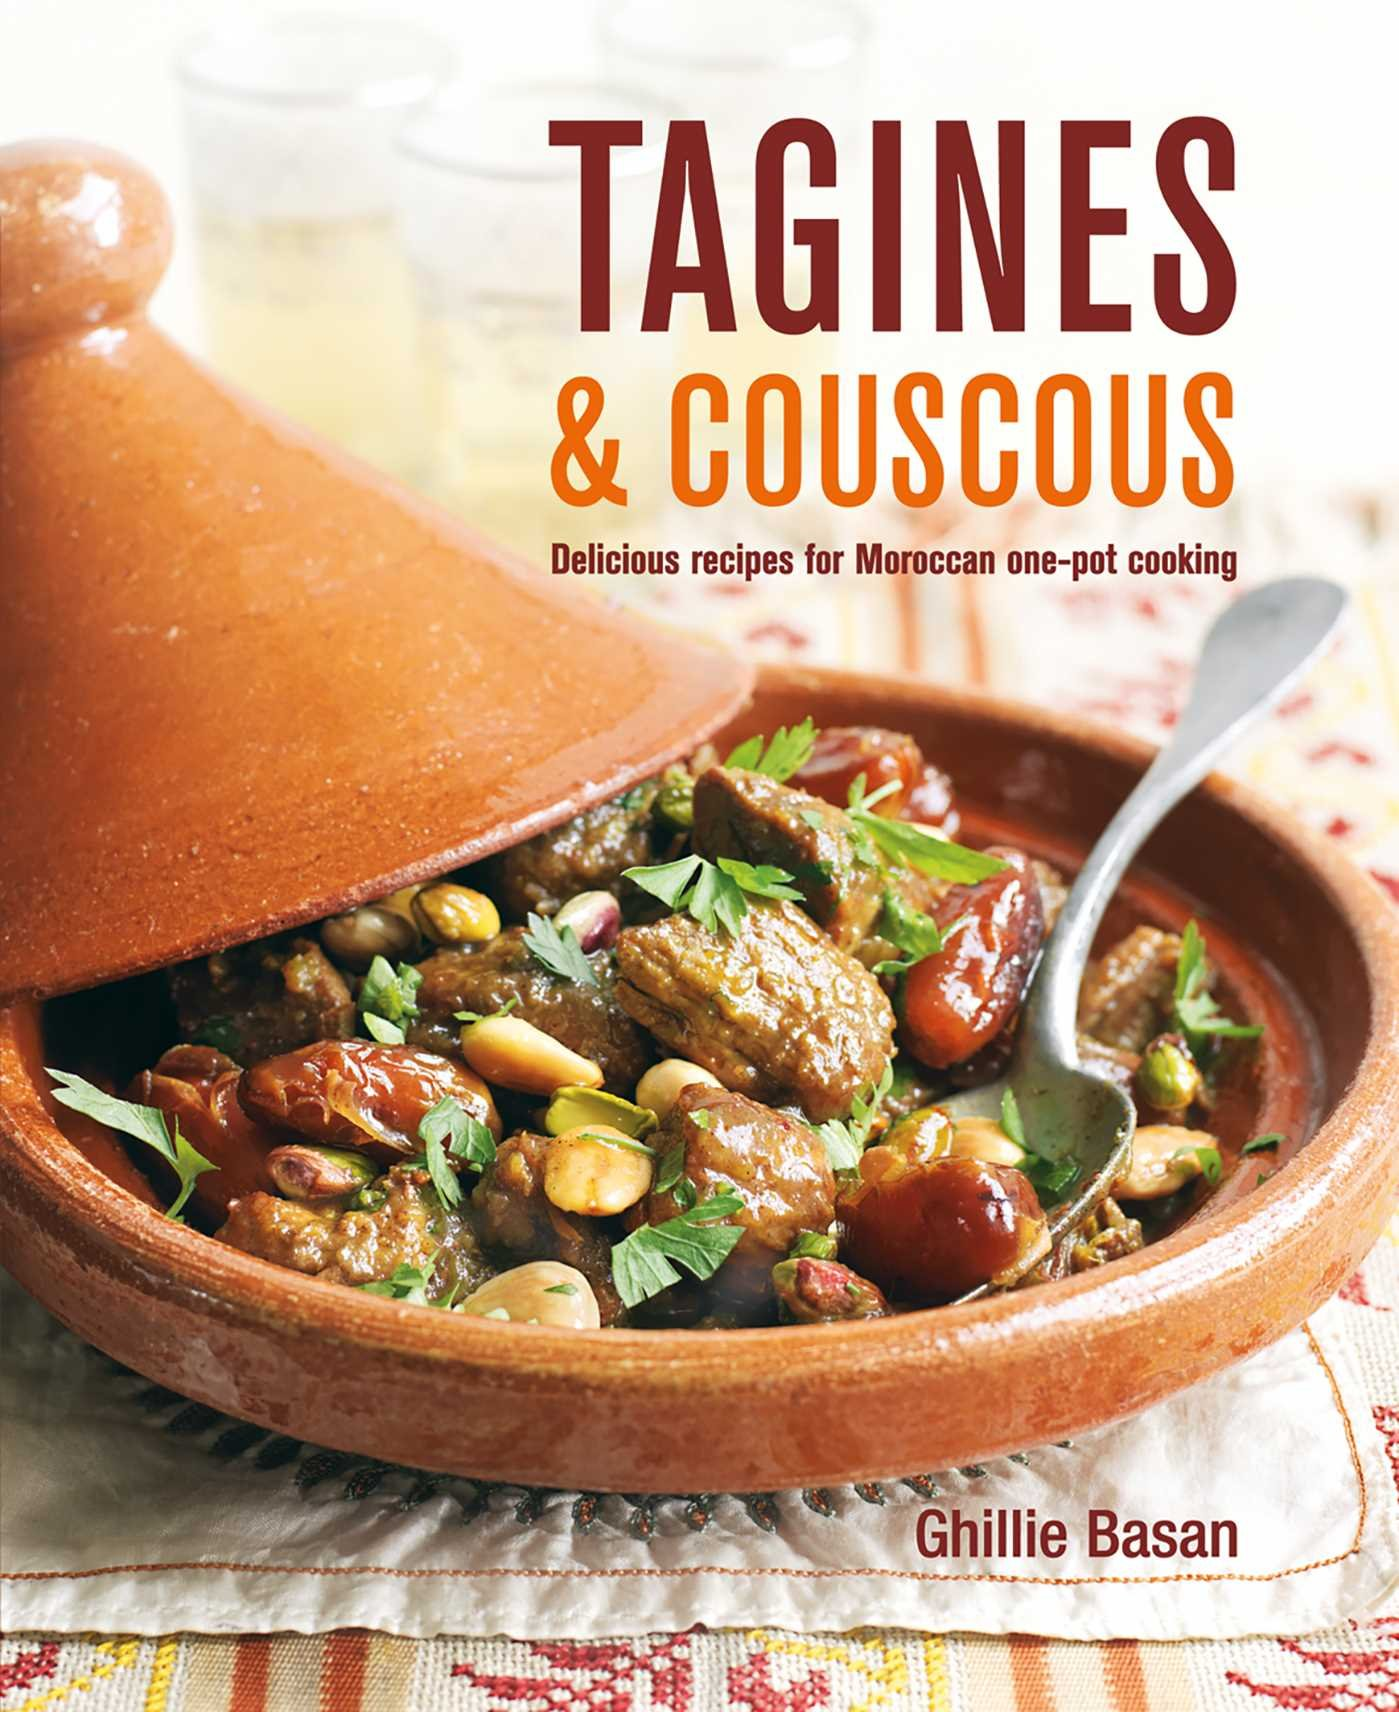 Moroccan Dinner Party Menu Ideas Part - 31: Tagines And Couscous: Delicious Recipes For Moroccan One-pot Cooking:  Ghillie Basan: 9781845979485: Amazon.com: Books